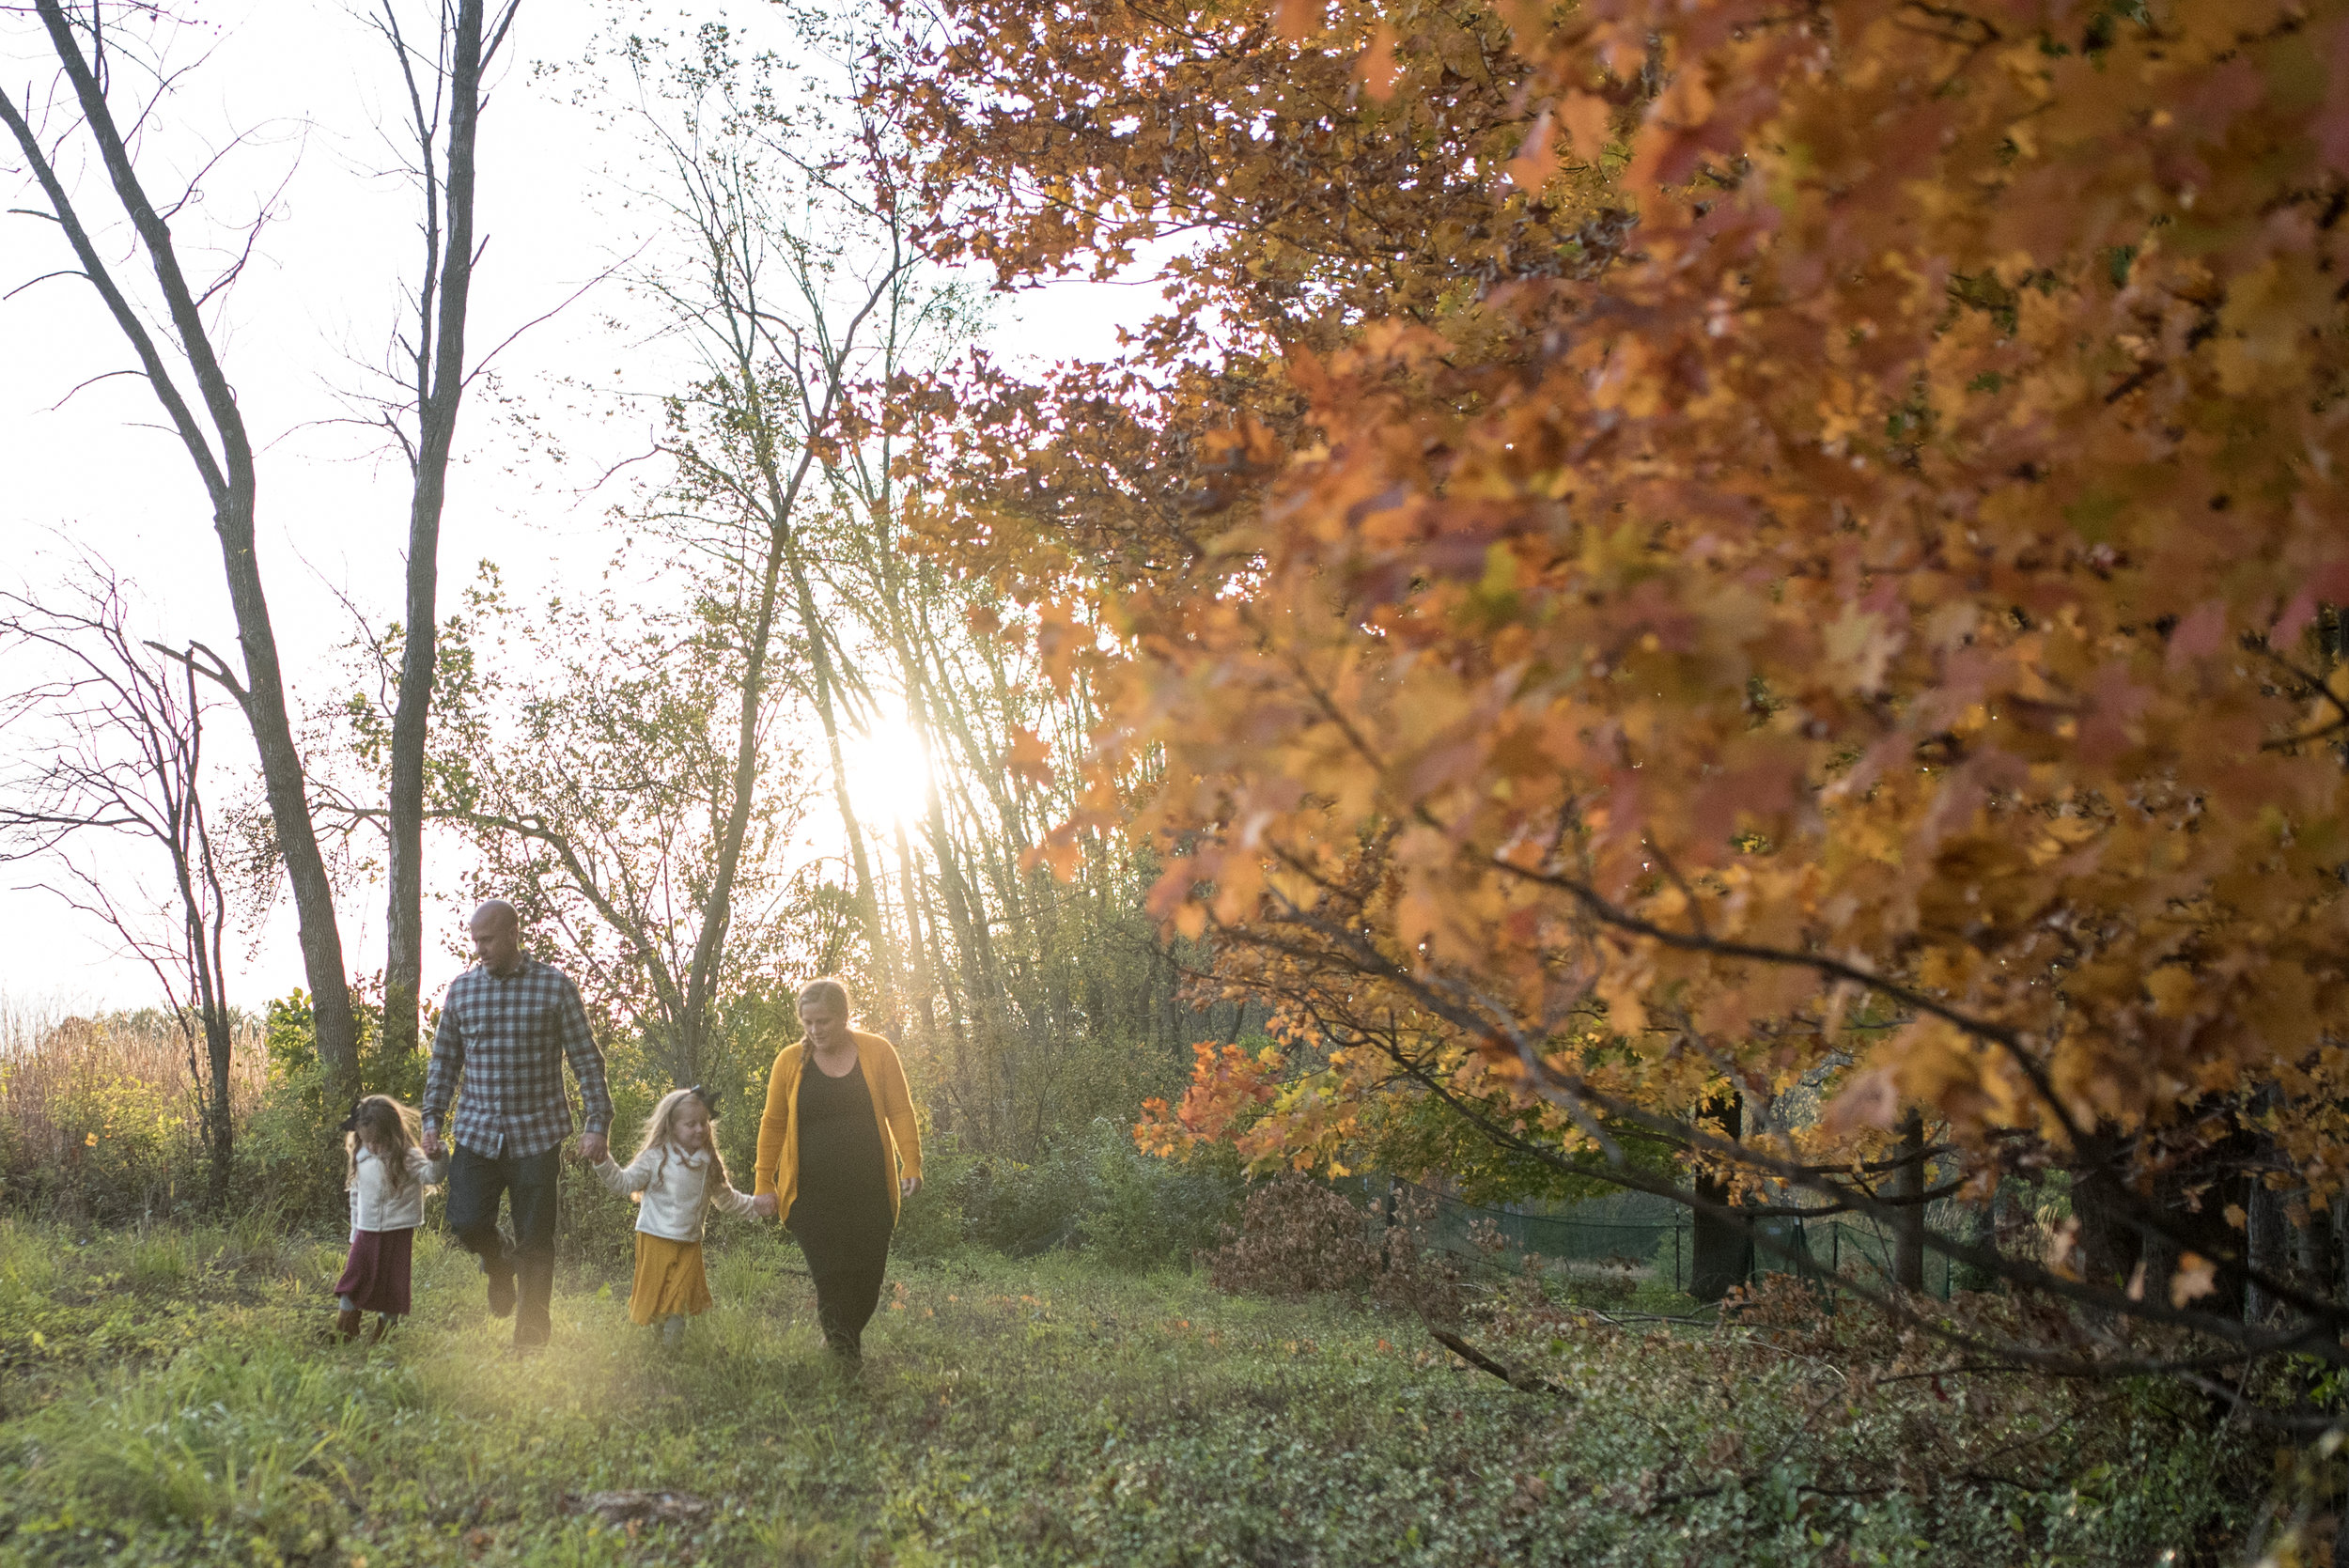 Family holding hands and walking in a park near fall trees